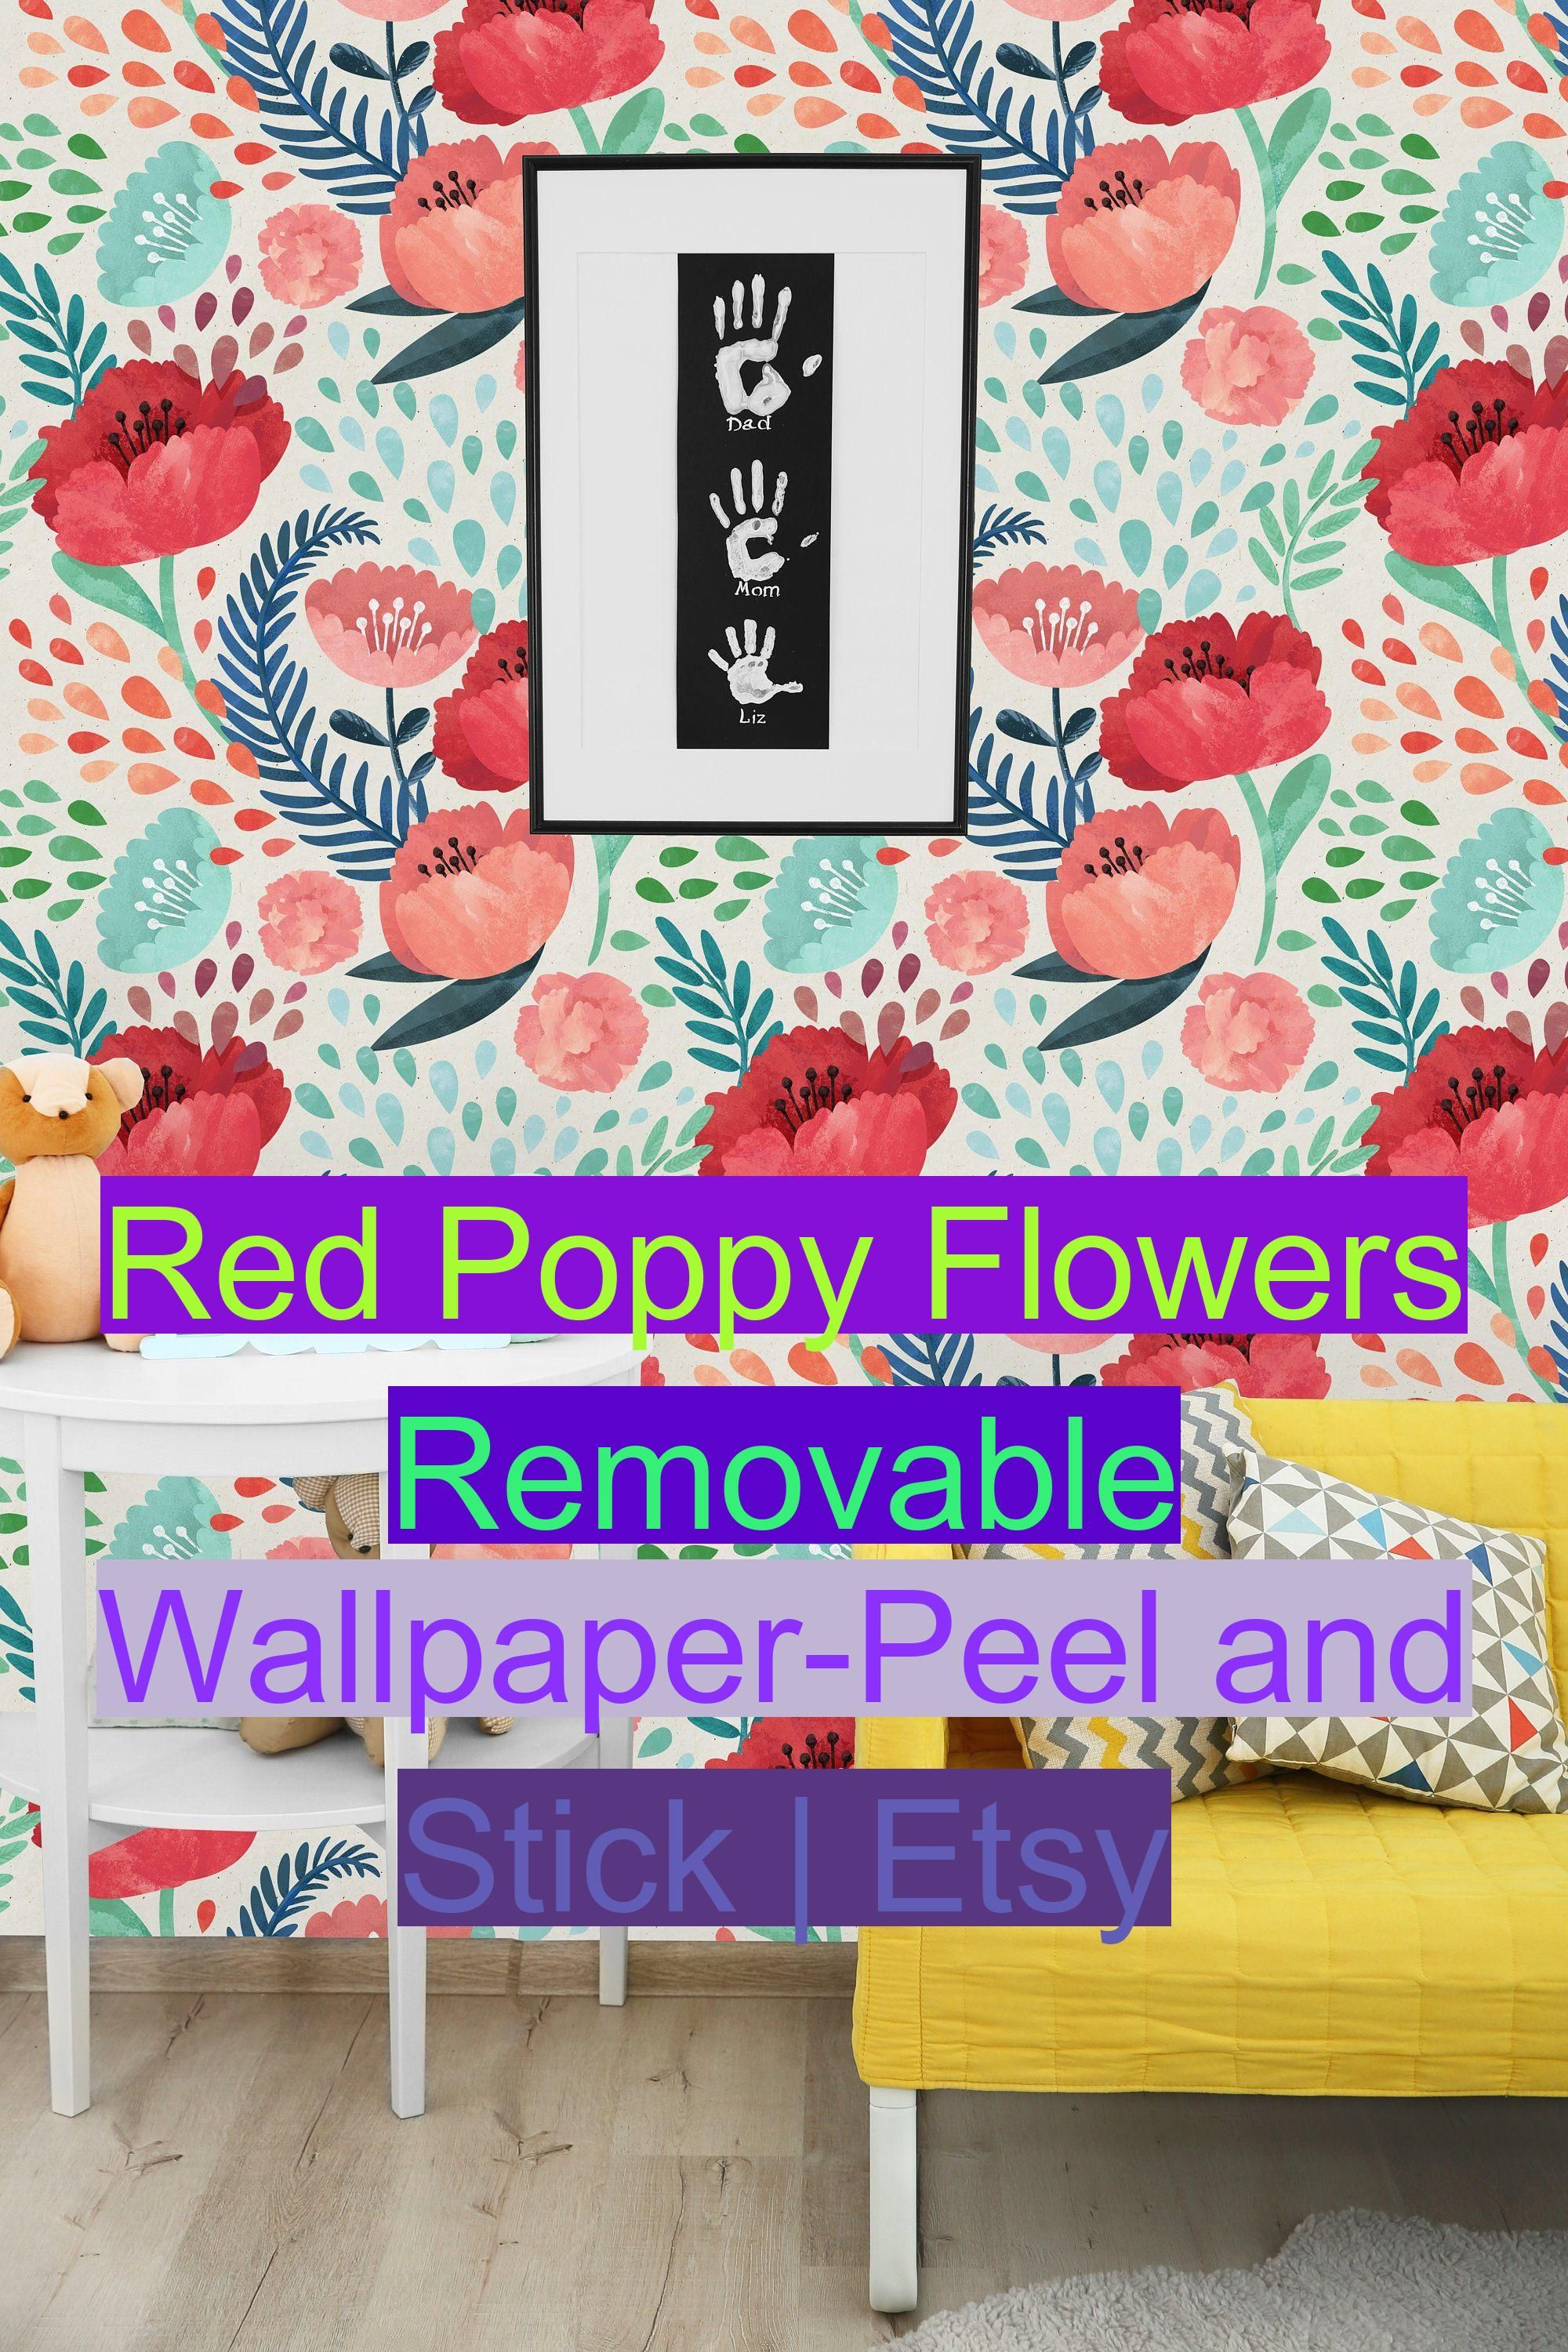 Red Poppy Flowers Removable Wallpaper Peel And Stick Etsy Poppy Flower Red Poppies Poppies